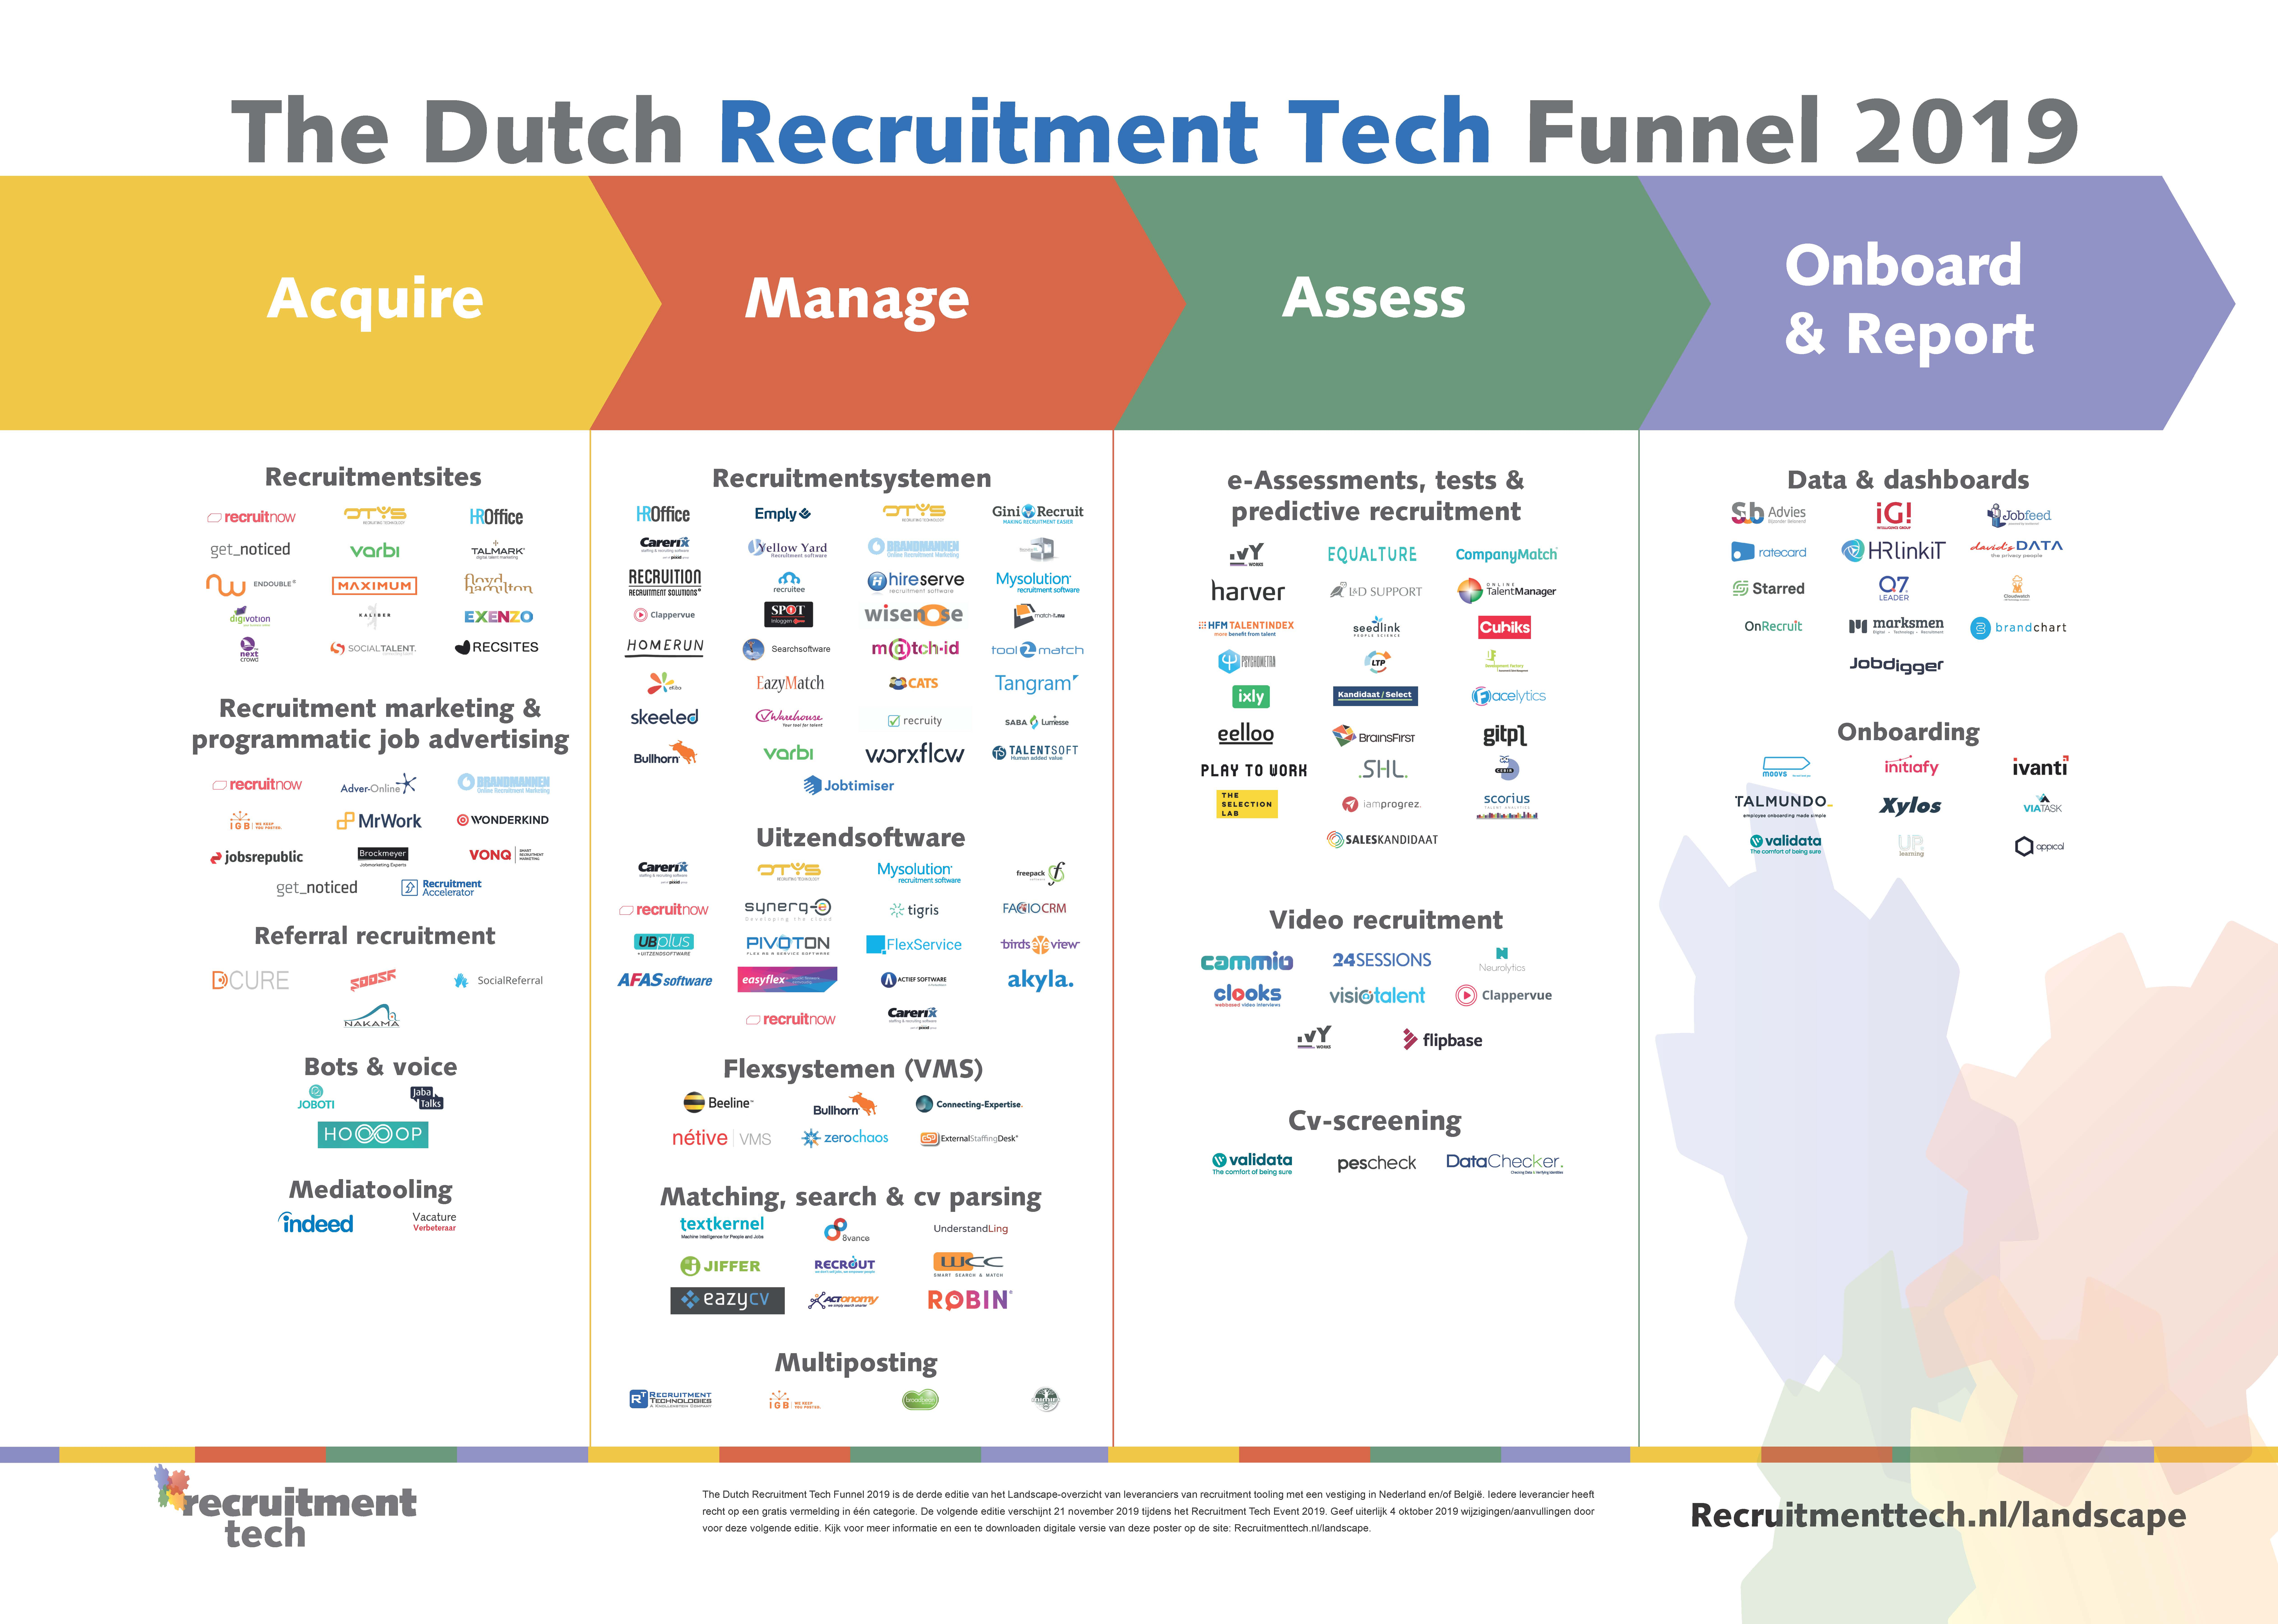 Dutch Recruitment Tech Funnel 2019